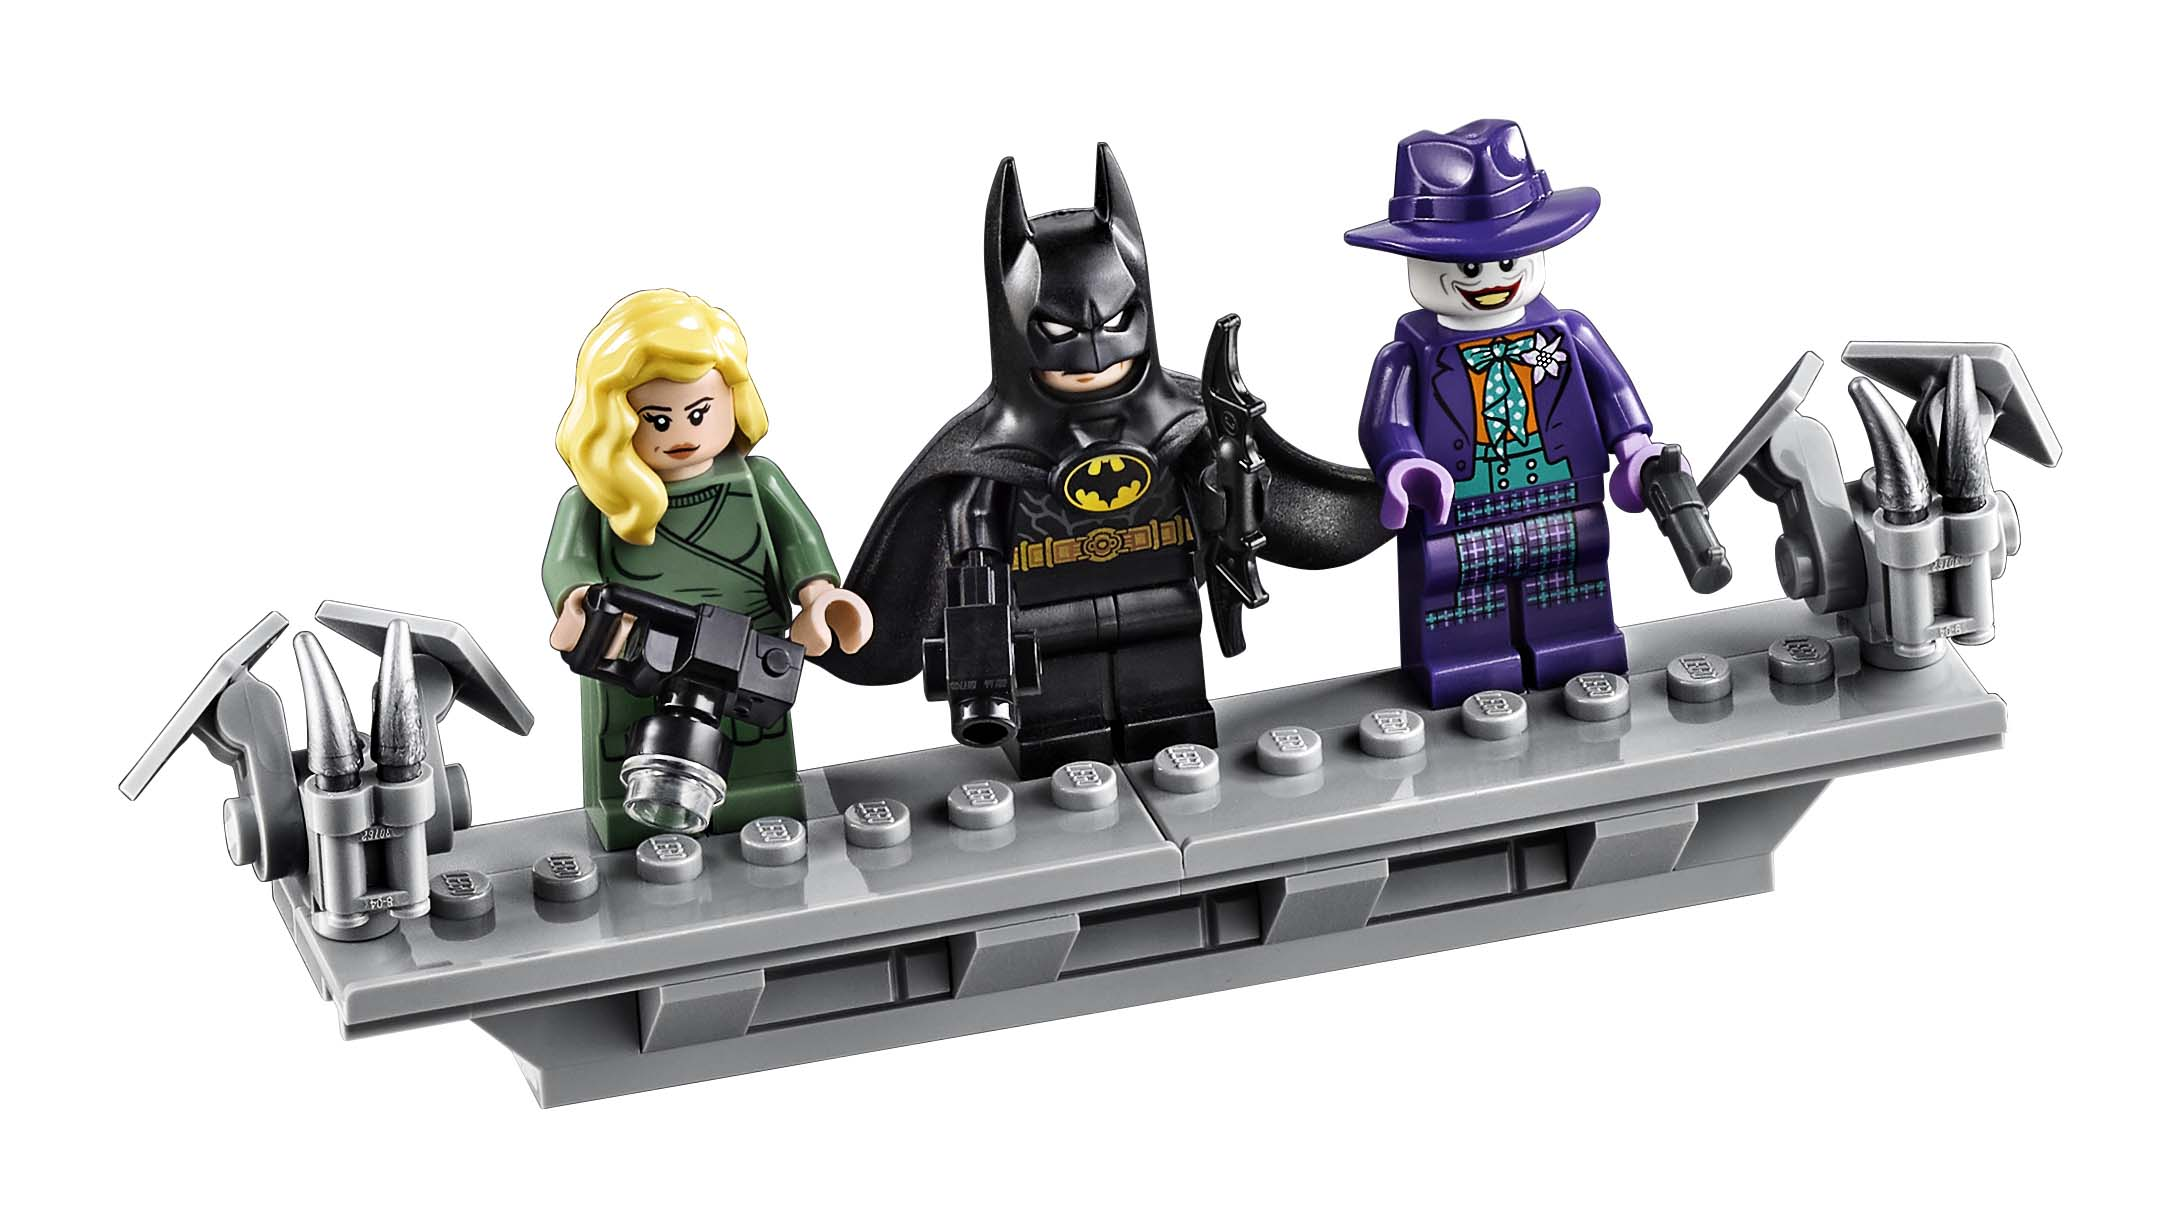 Marvel DC Comics Batman Themed Lego Moc Minifigure Gift For Kids Batgirl